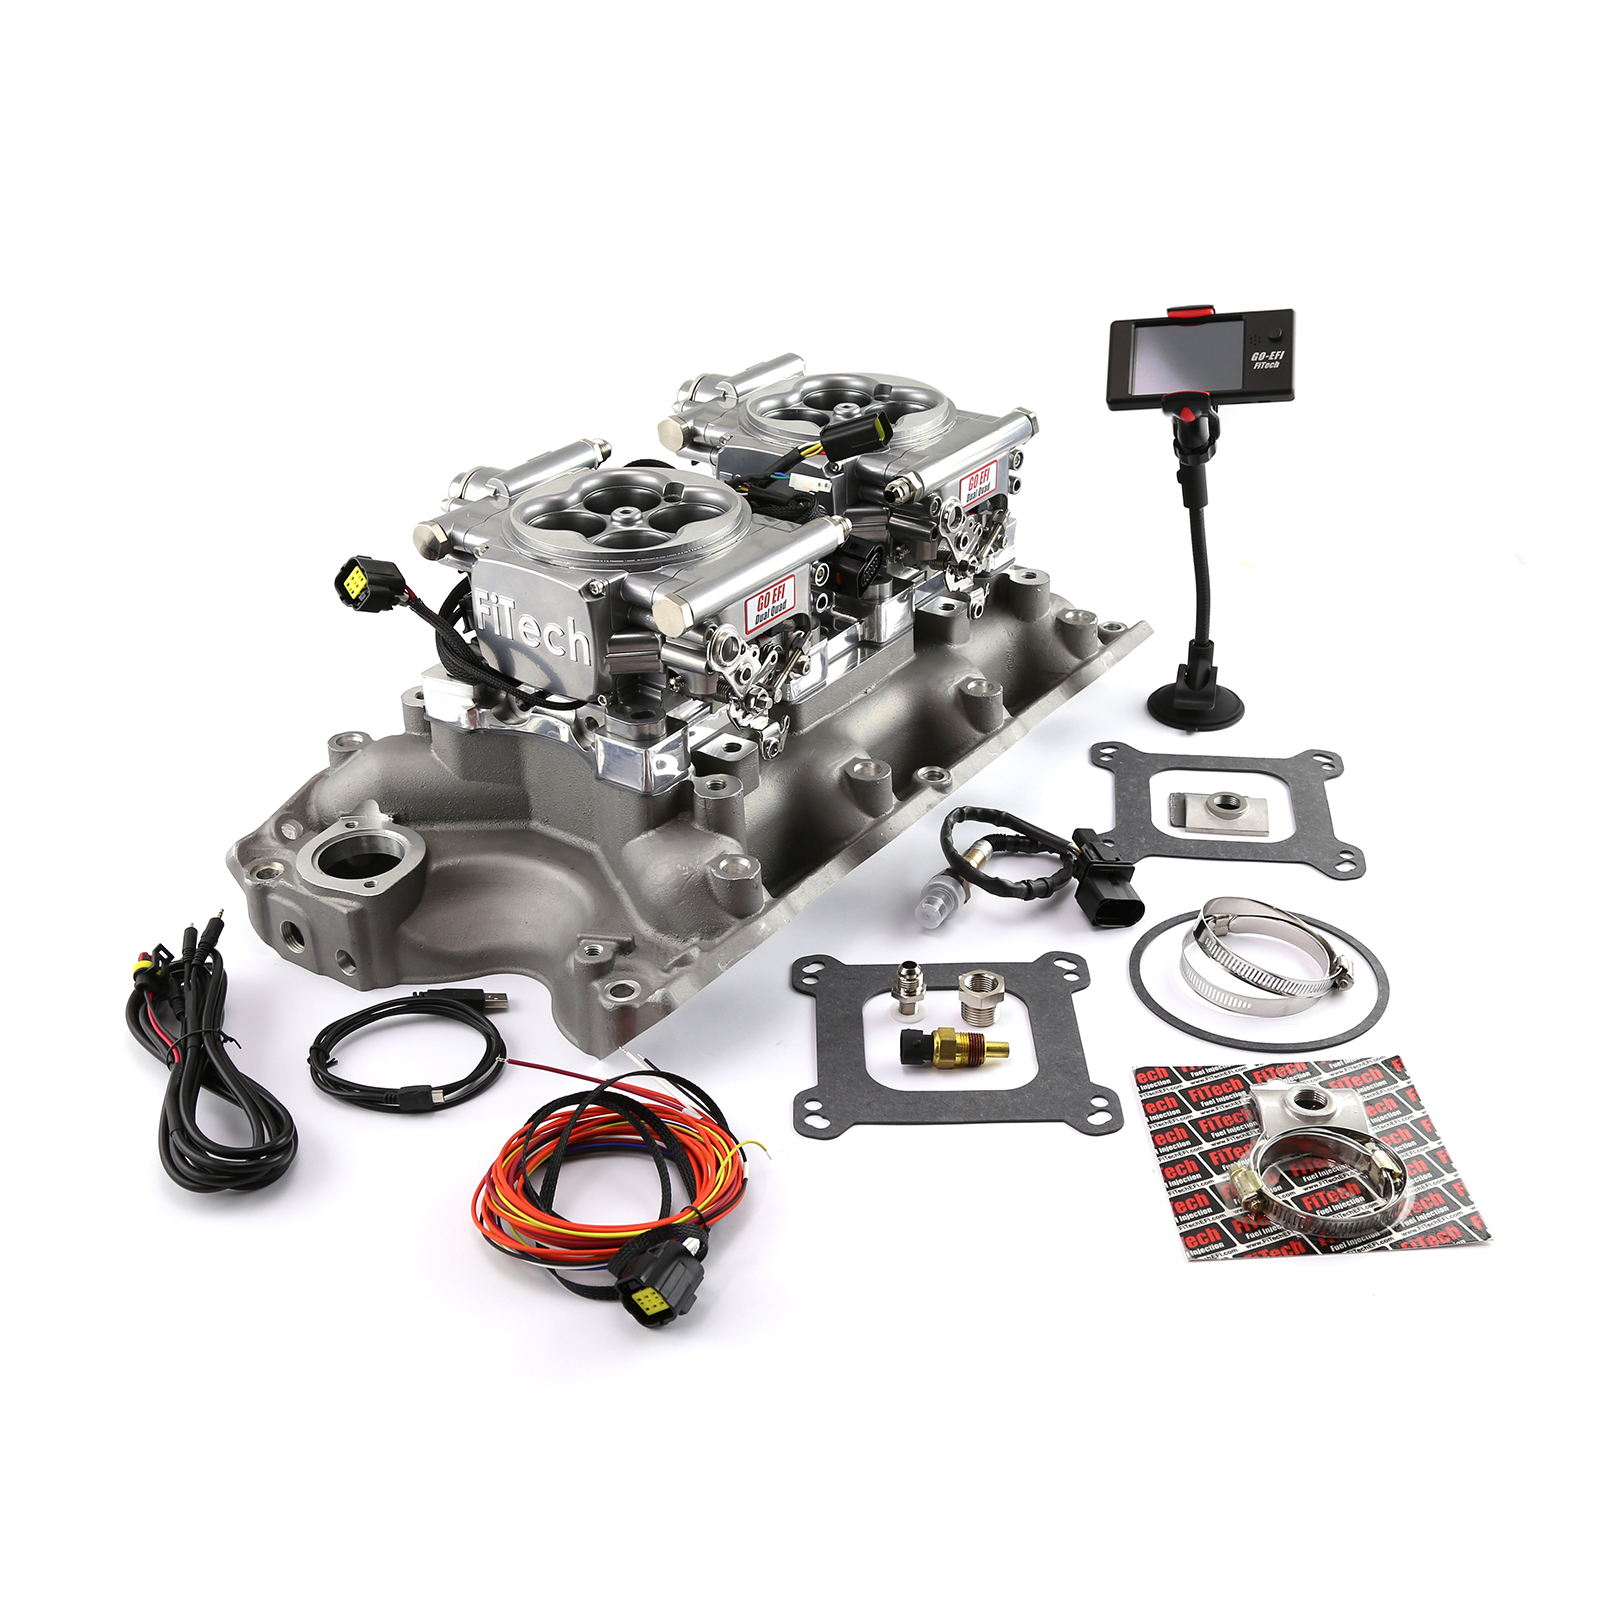 Ford 429 460 Twin Intake Manifold & Dual Fitech EFI 30061 Fuel Injection